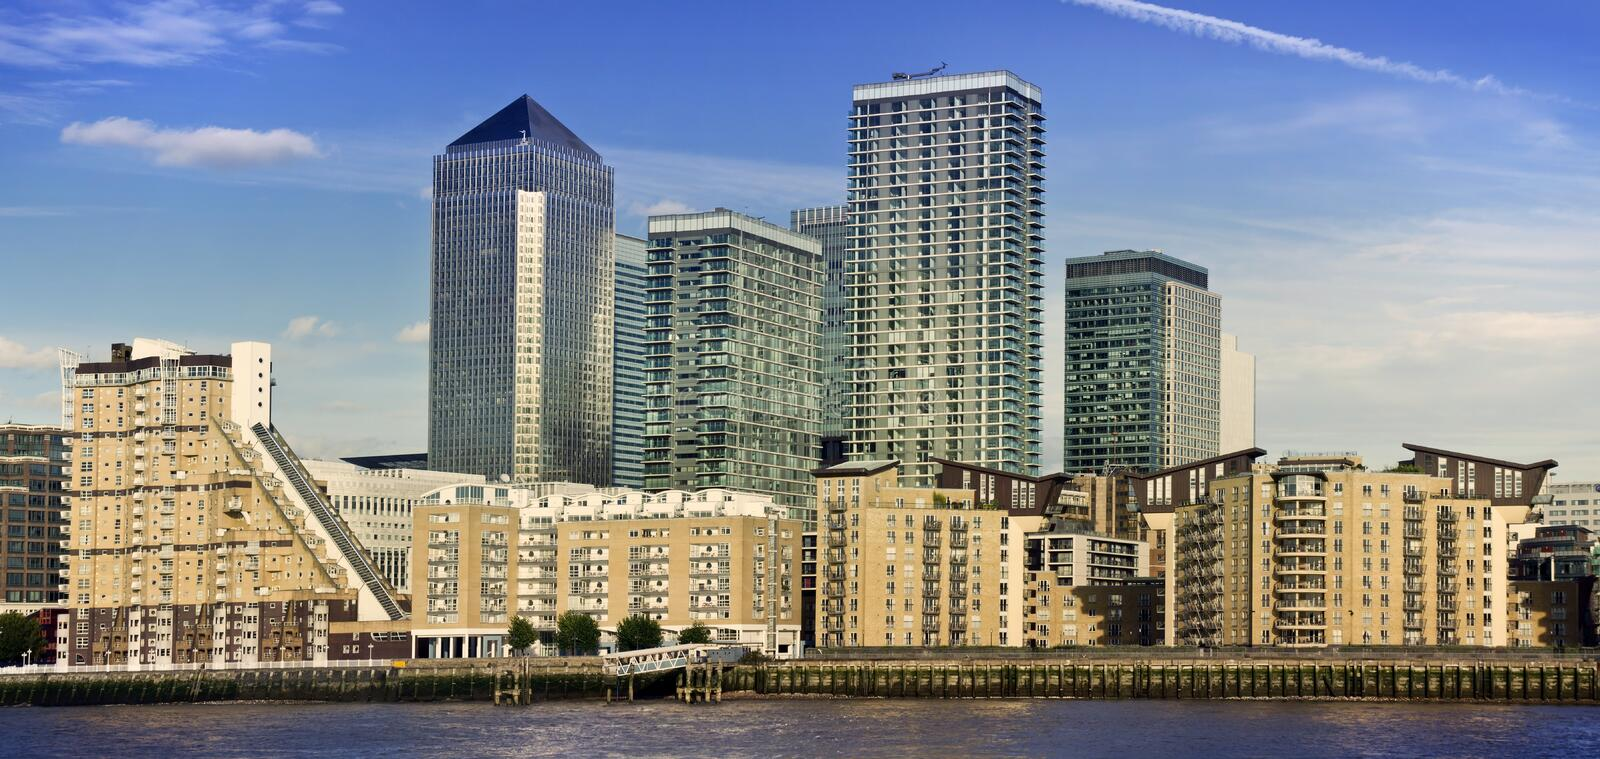 Canary Wharf, London, UK. Canary Wharf, Famous skyscrapers of London's financial district. This view includes Credit Suisse, Morgan Stanley, HSBC Group Head stock photos